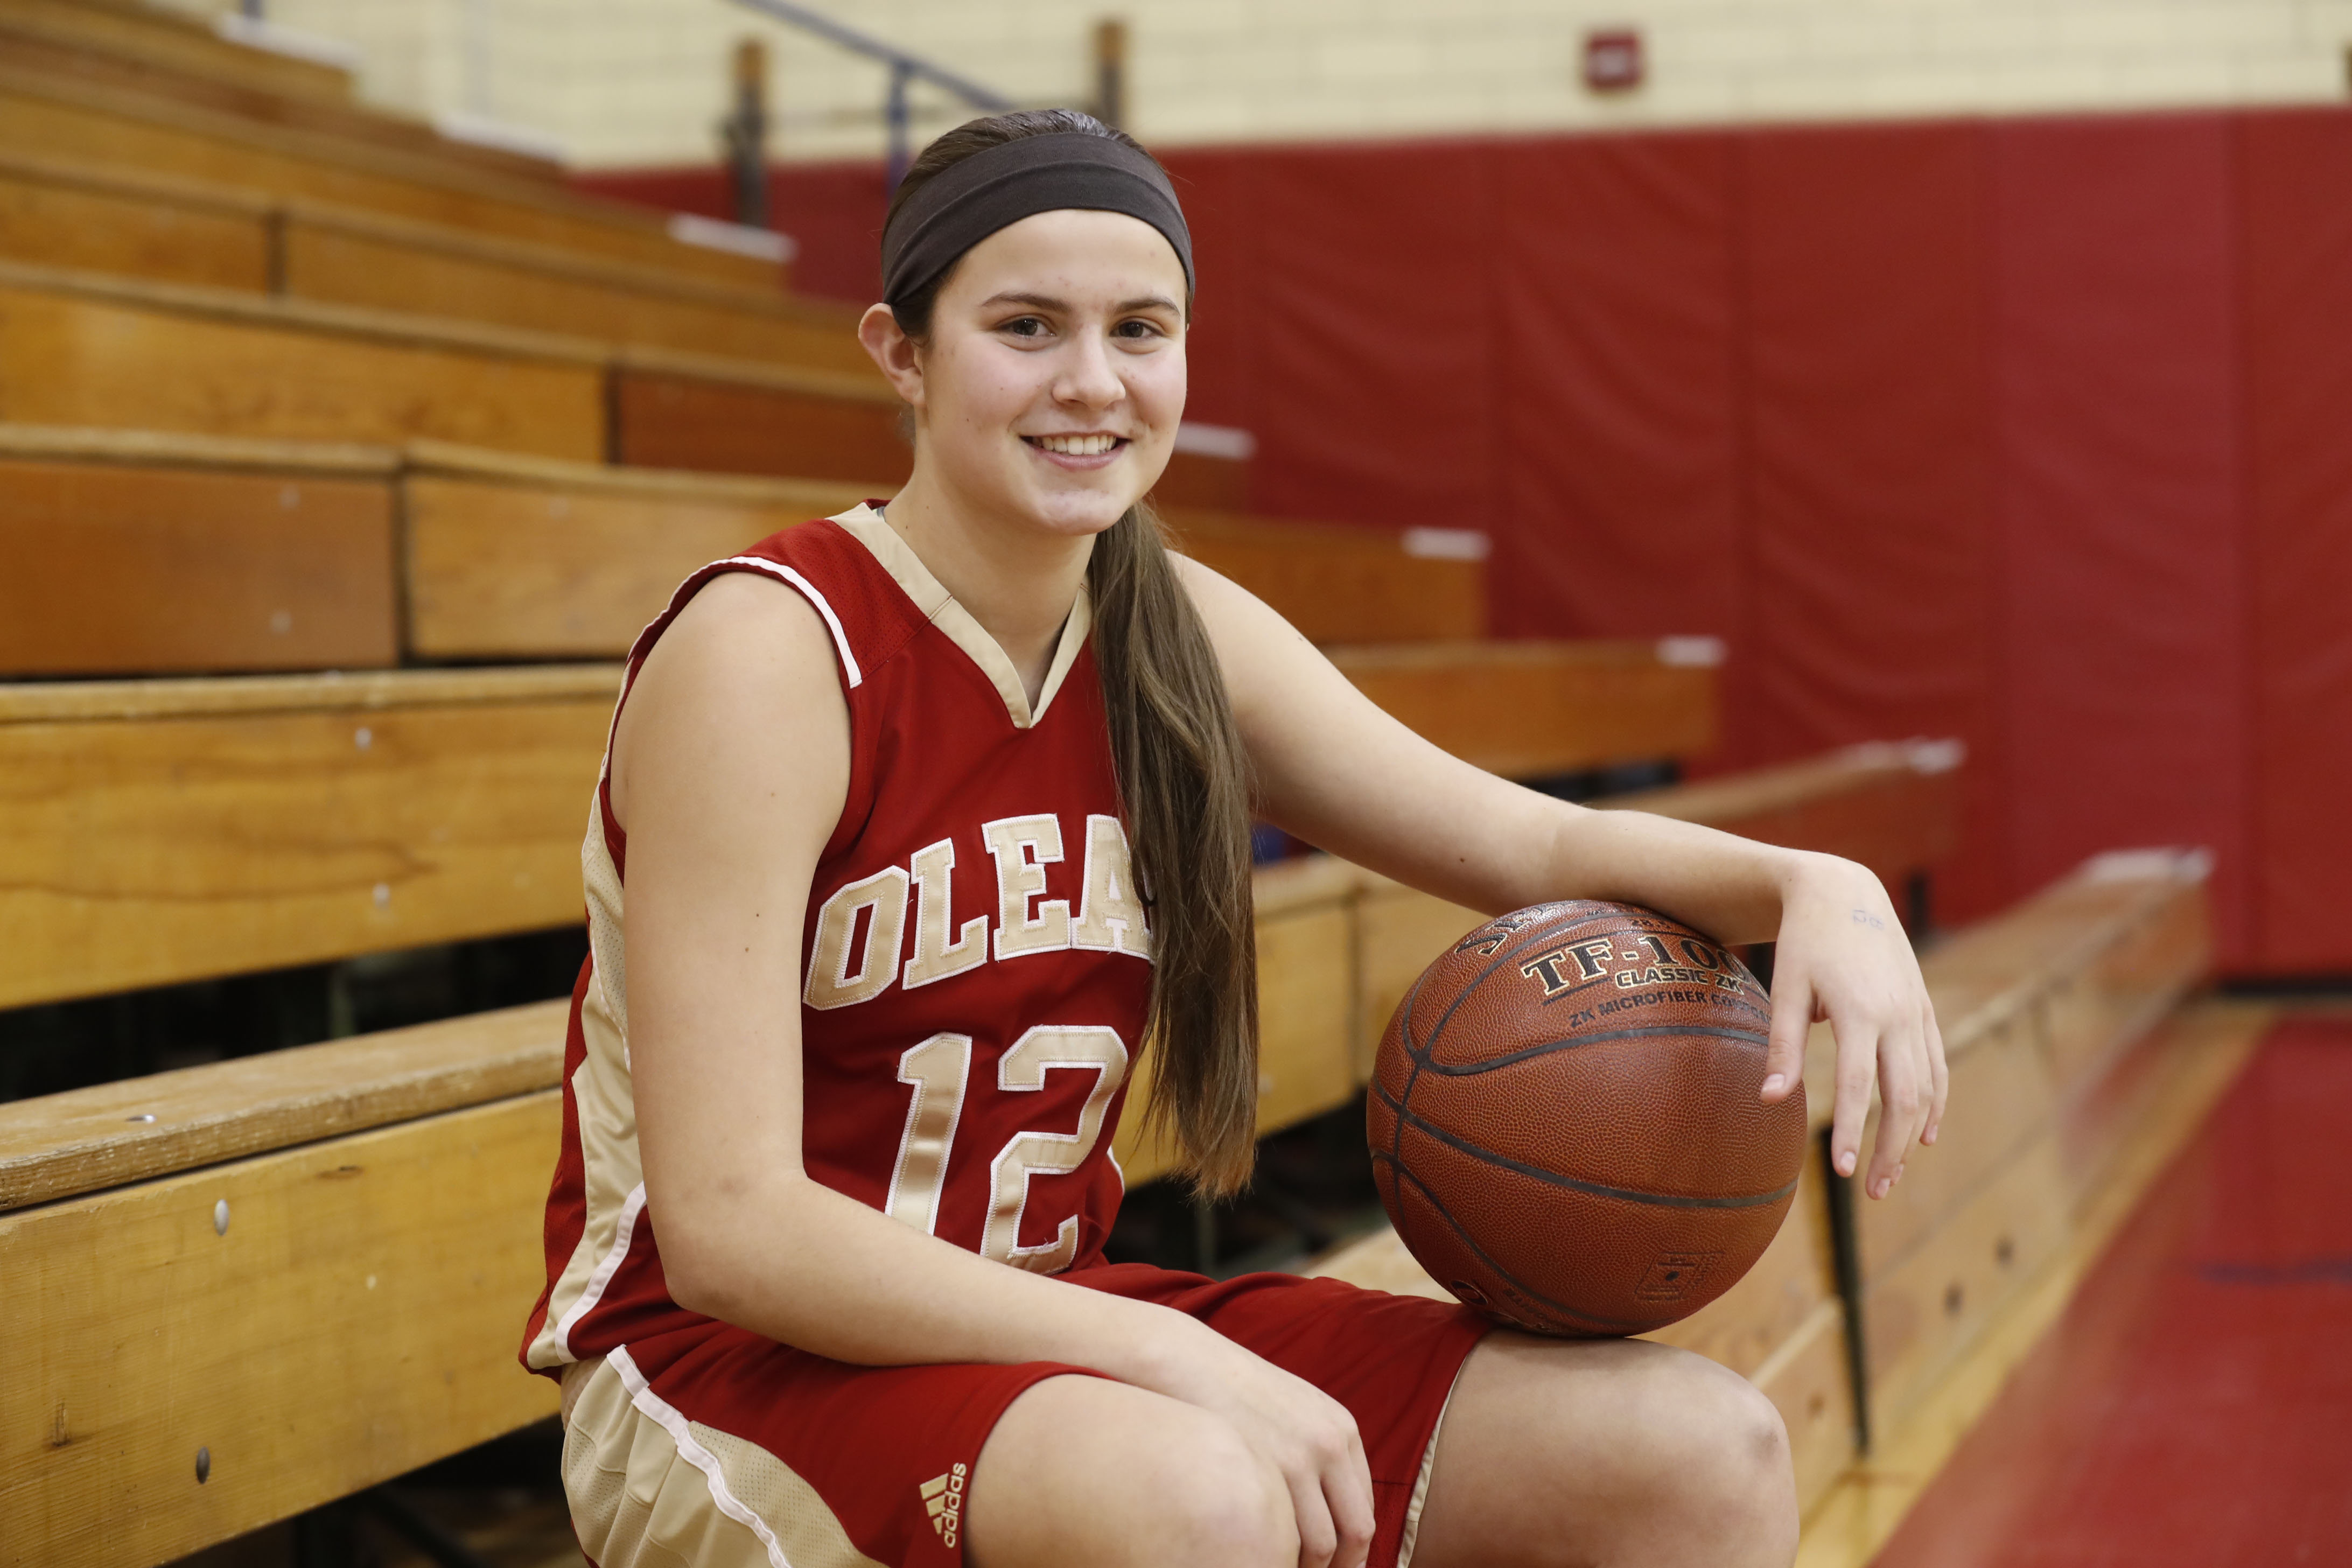 Olean's Sara Pfeiffer scored 63 points against Maple Grove on Feb. 3. (Harry Scull Jr./News file photo)